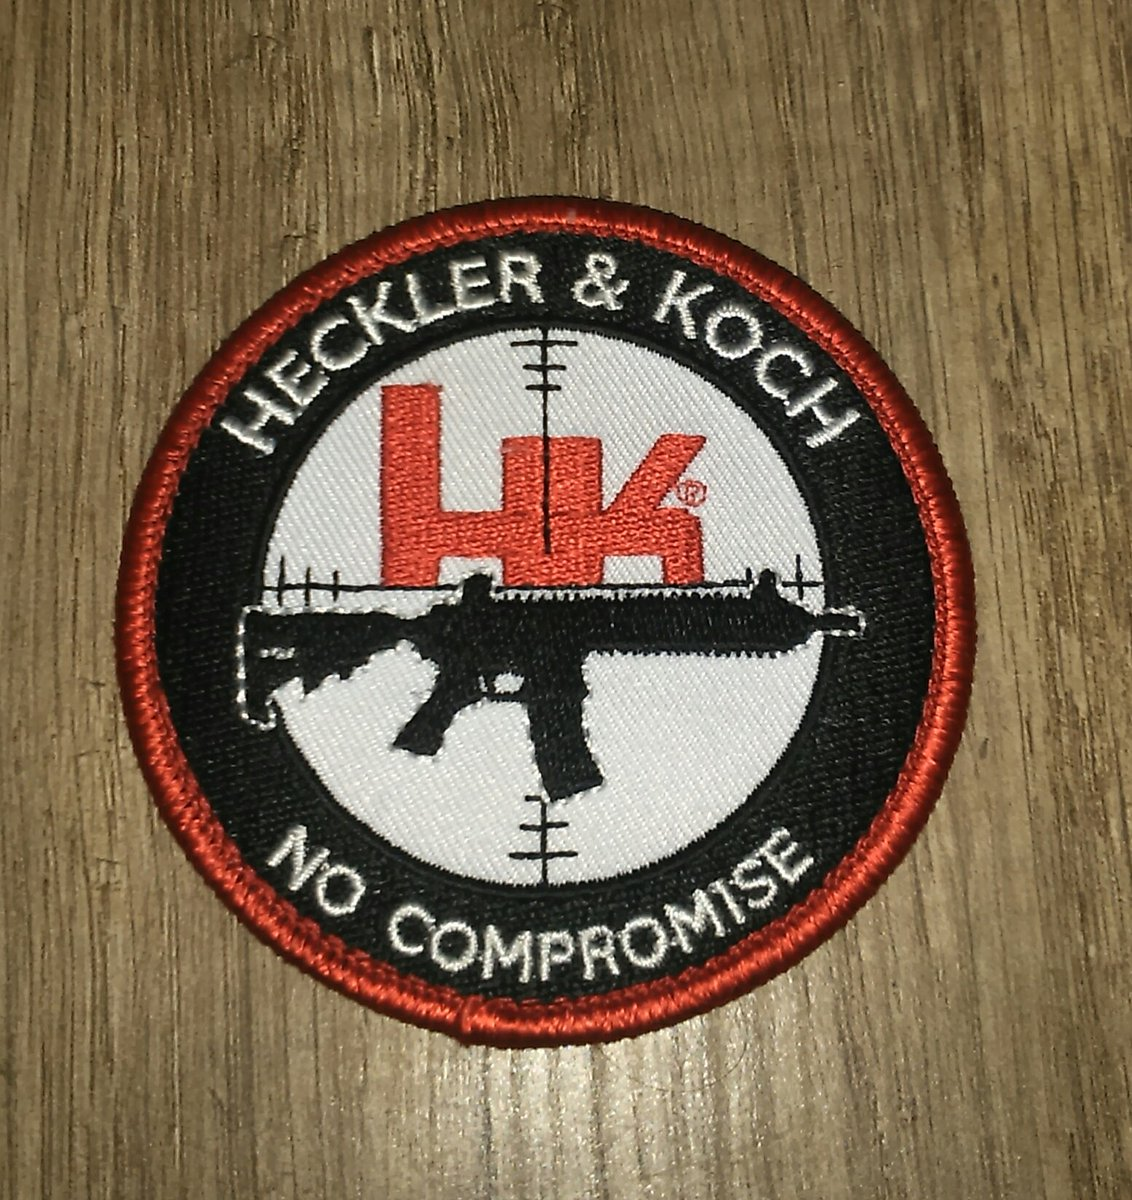 And my new patch ;)   #airsoft #airsoftisnotacrime #Heckler&Kochpic.twitter.com/X6X47XwNry